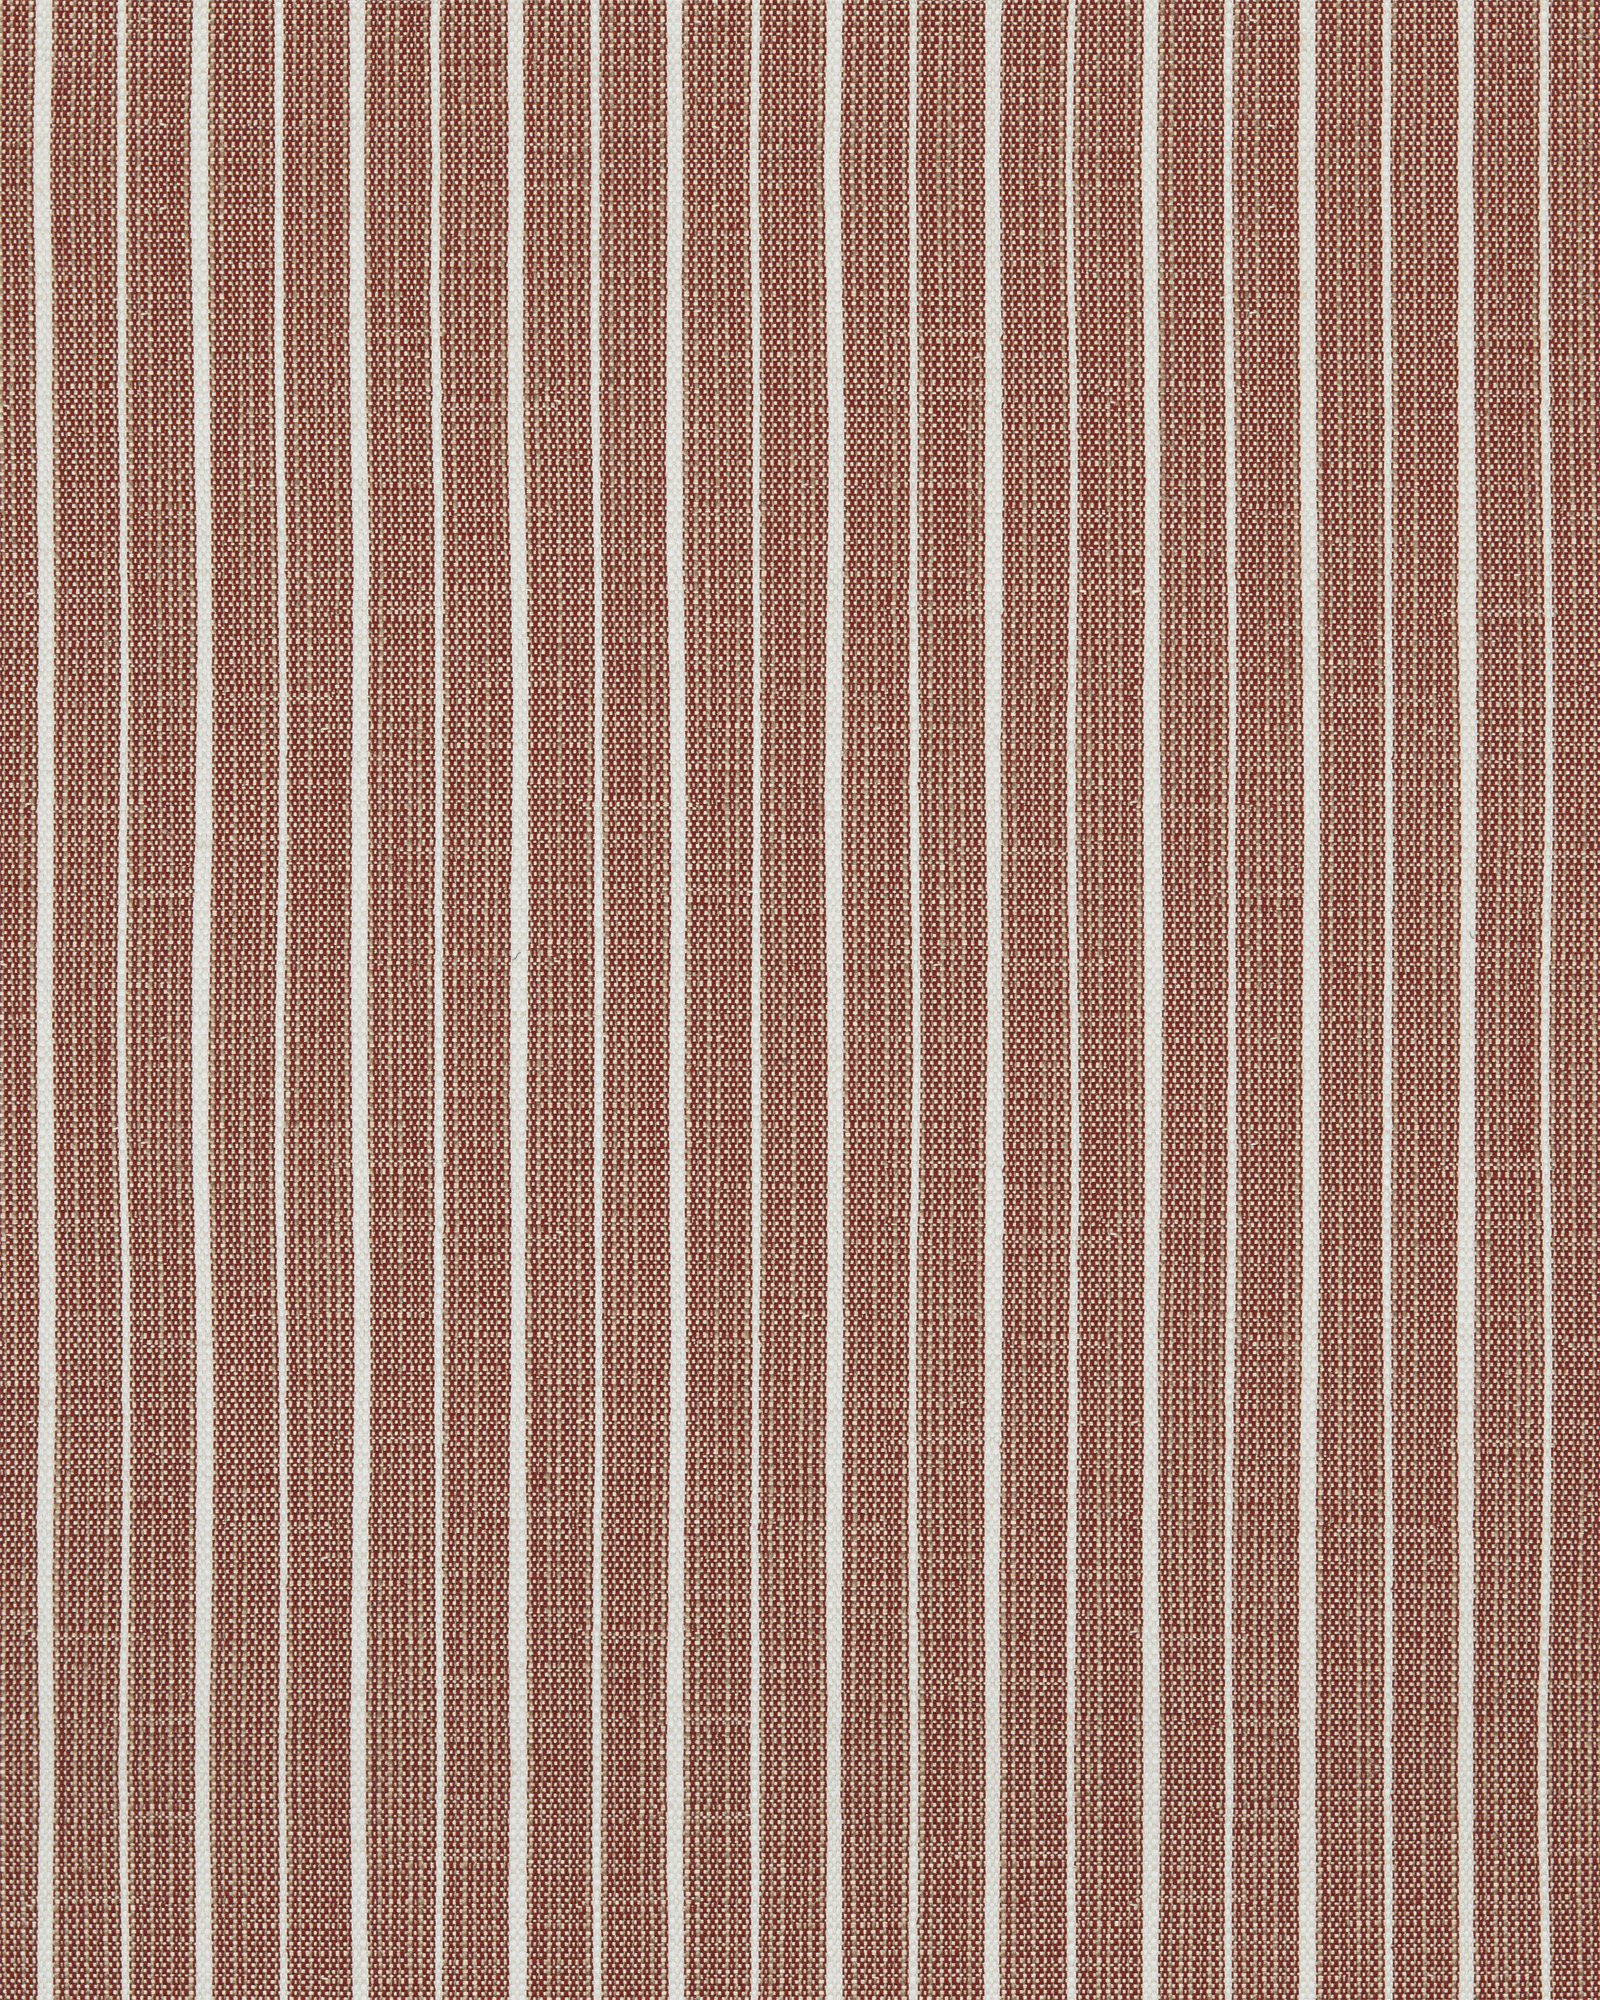 Fabric by the Yard - Sunbrella® Sail Stripe, Terracotta